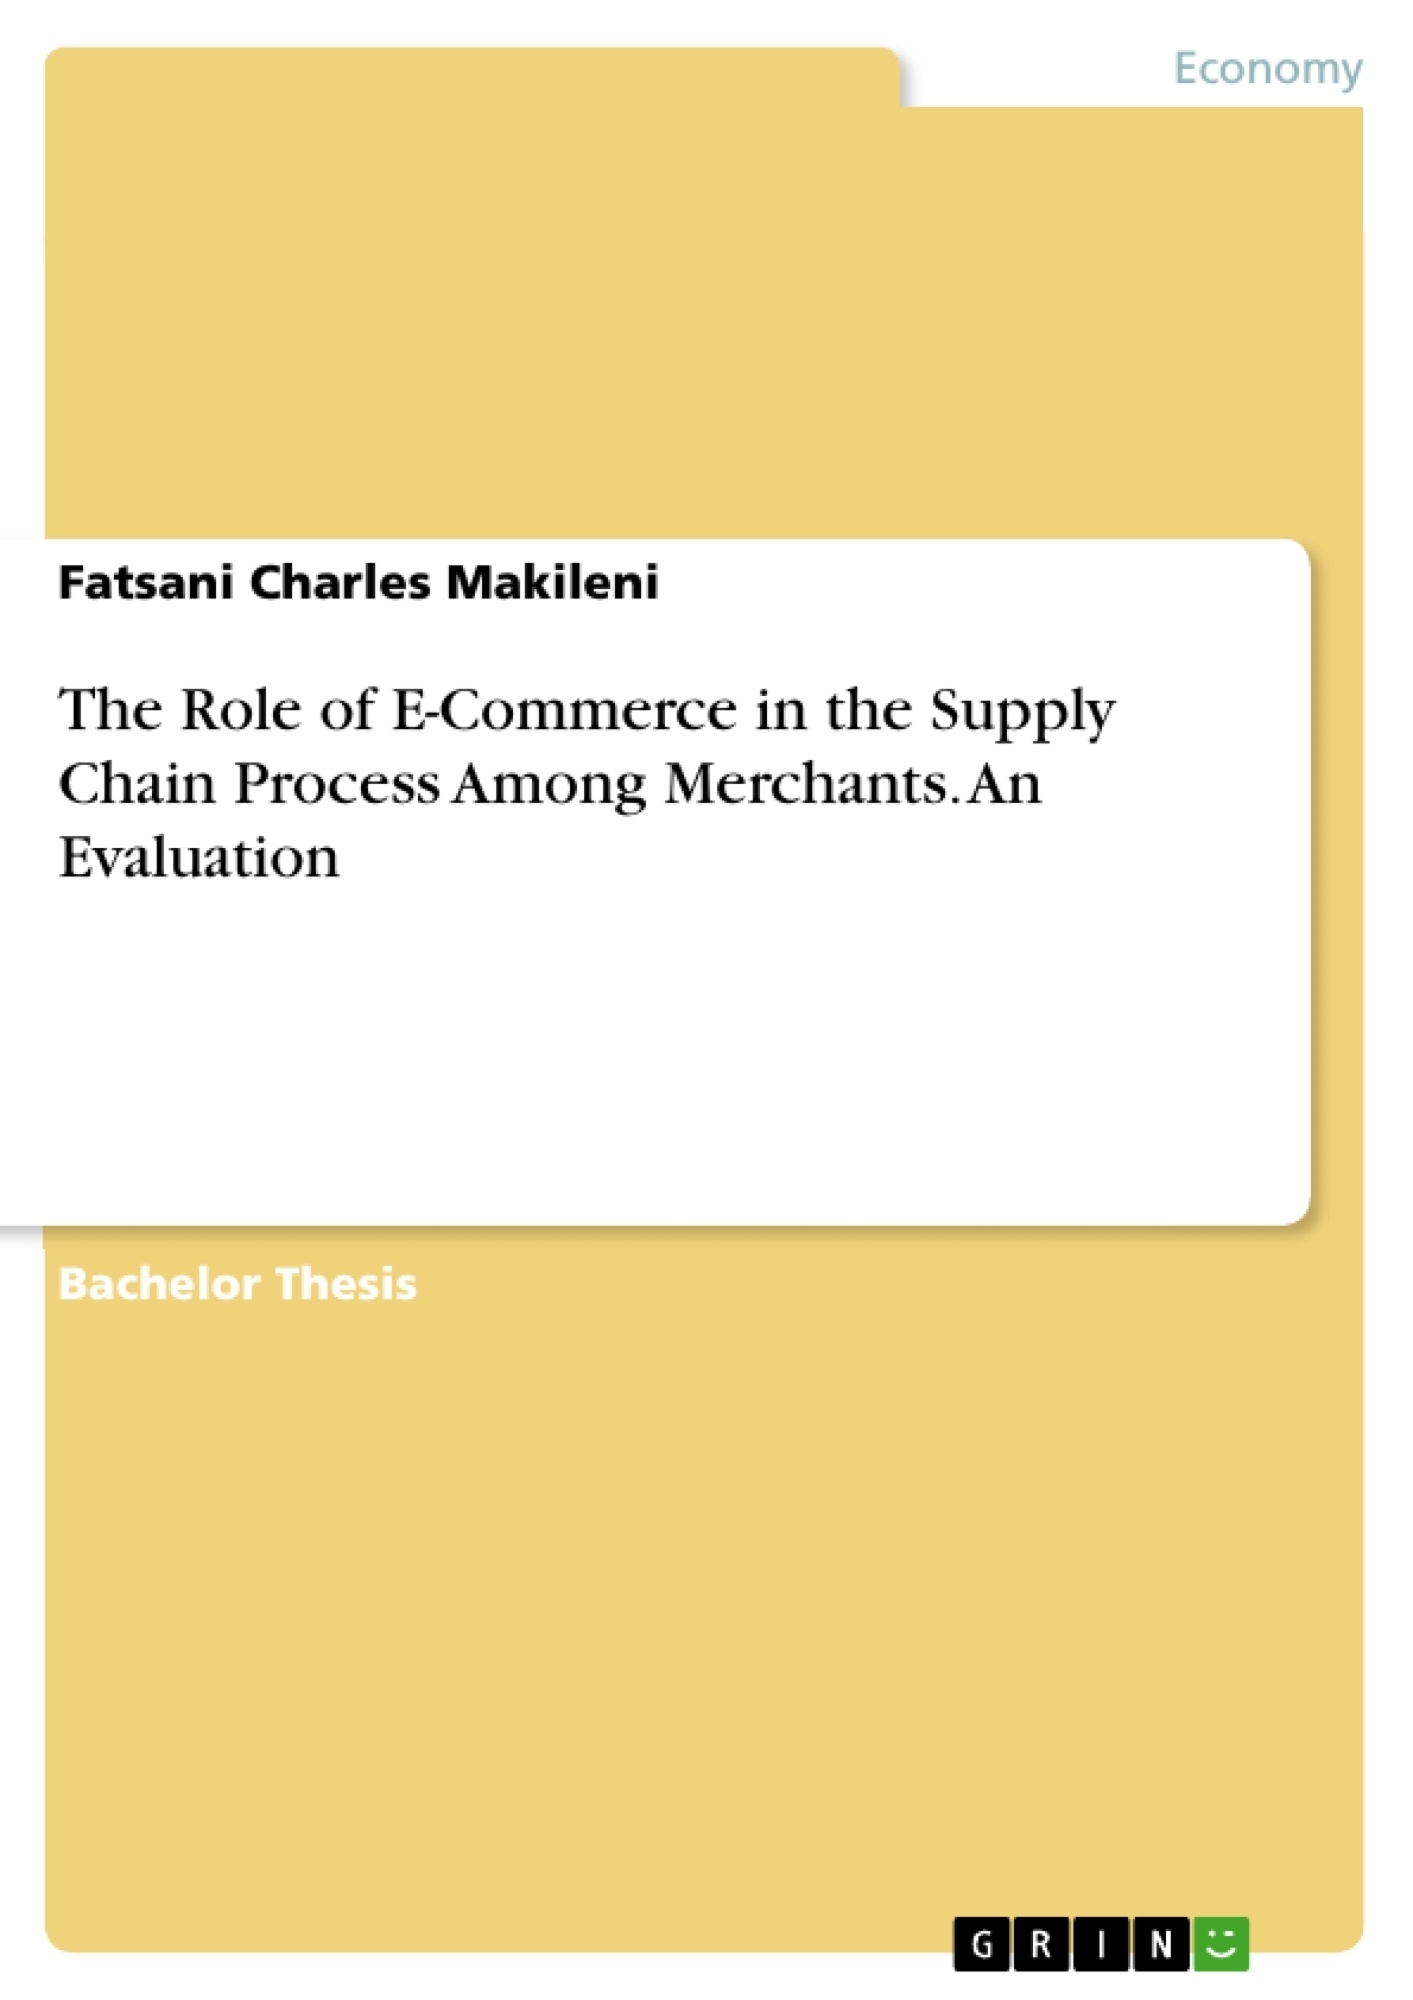 The role of e commerce in the supply chain process among merchants the role of e commerce in the supply chain process among merchants publish your masters thesis bachelors thesis essay or term paper fandeluxe Gallery